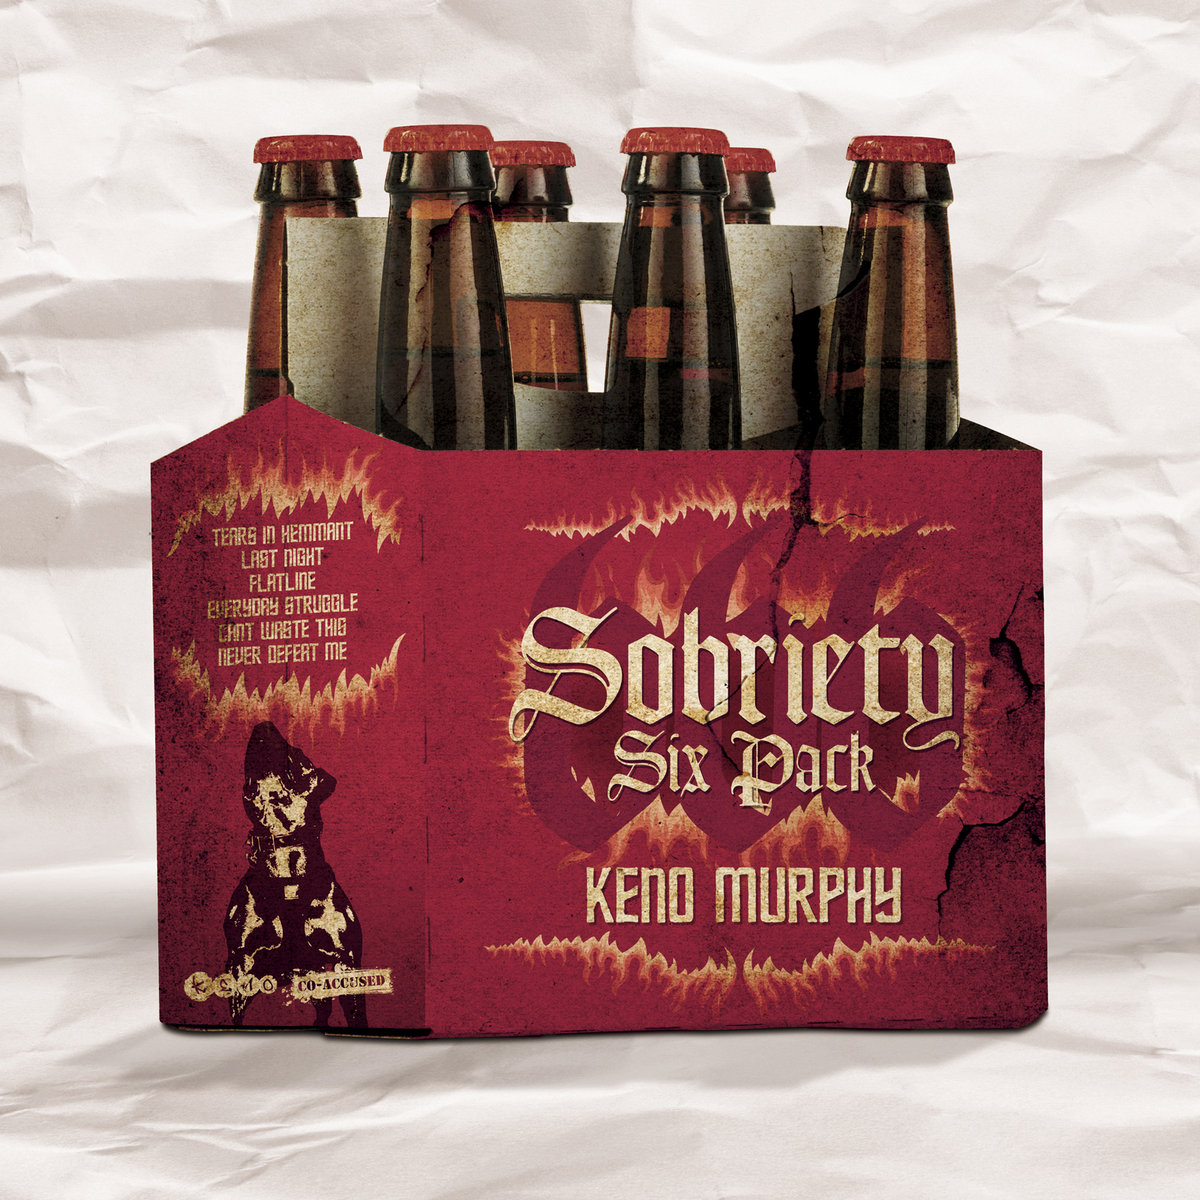 ecdad29f8ce7e from Sobriety 6 Pack by Keno Murphy